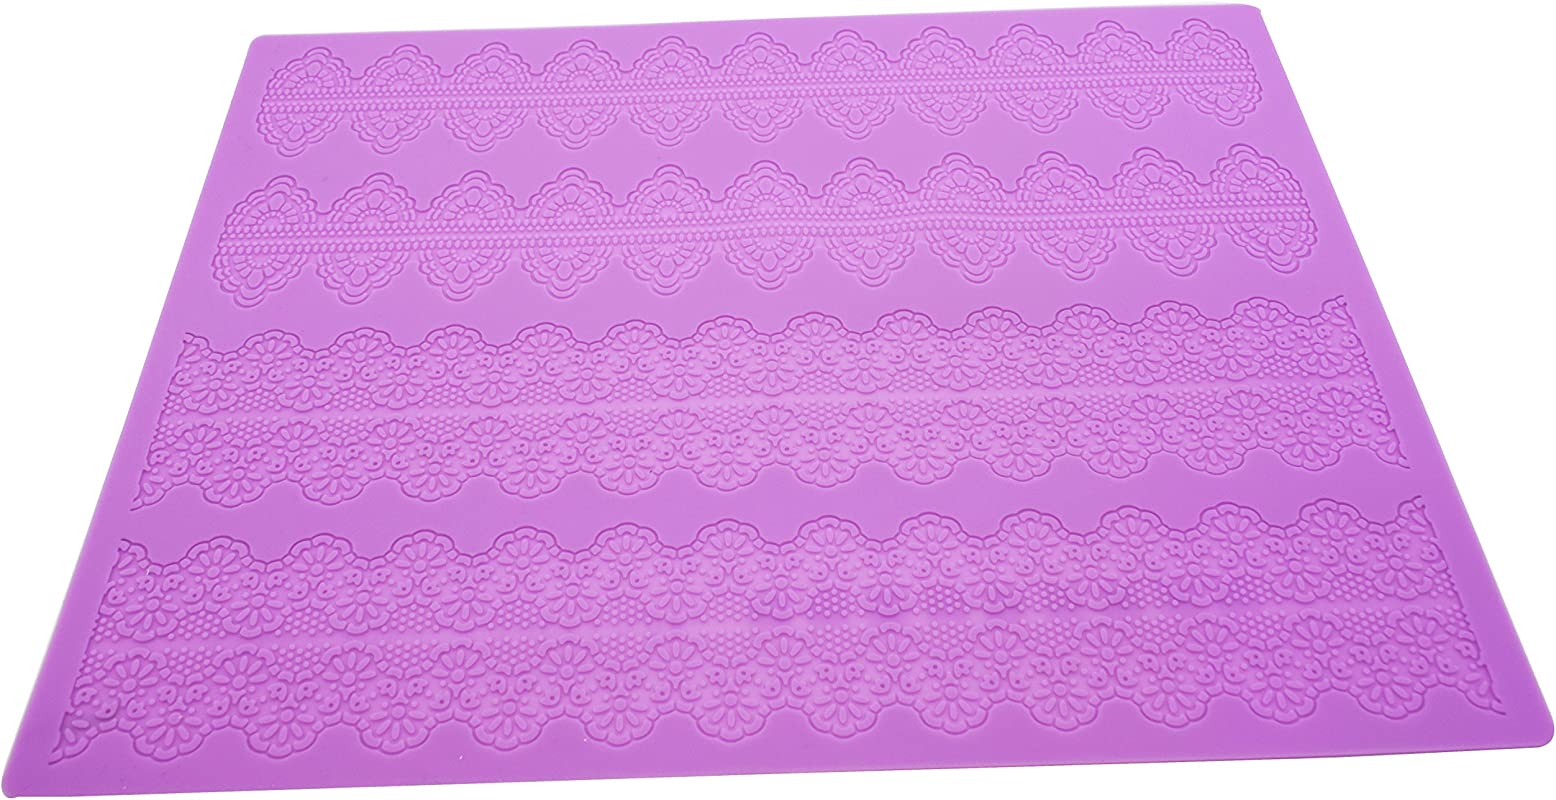 Silicone Lace KOOTIPS 15 1 X 11 2 Inches Vines Scrolls Cake Decorating Mold Decorating Tools Embossing Cake Fondant Mold Cupcake Mat For Cake Decorating Lace Mat A